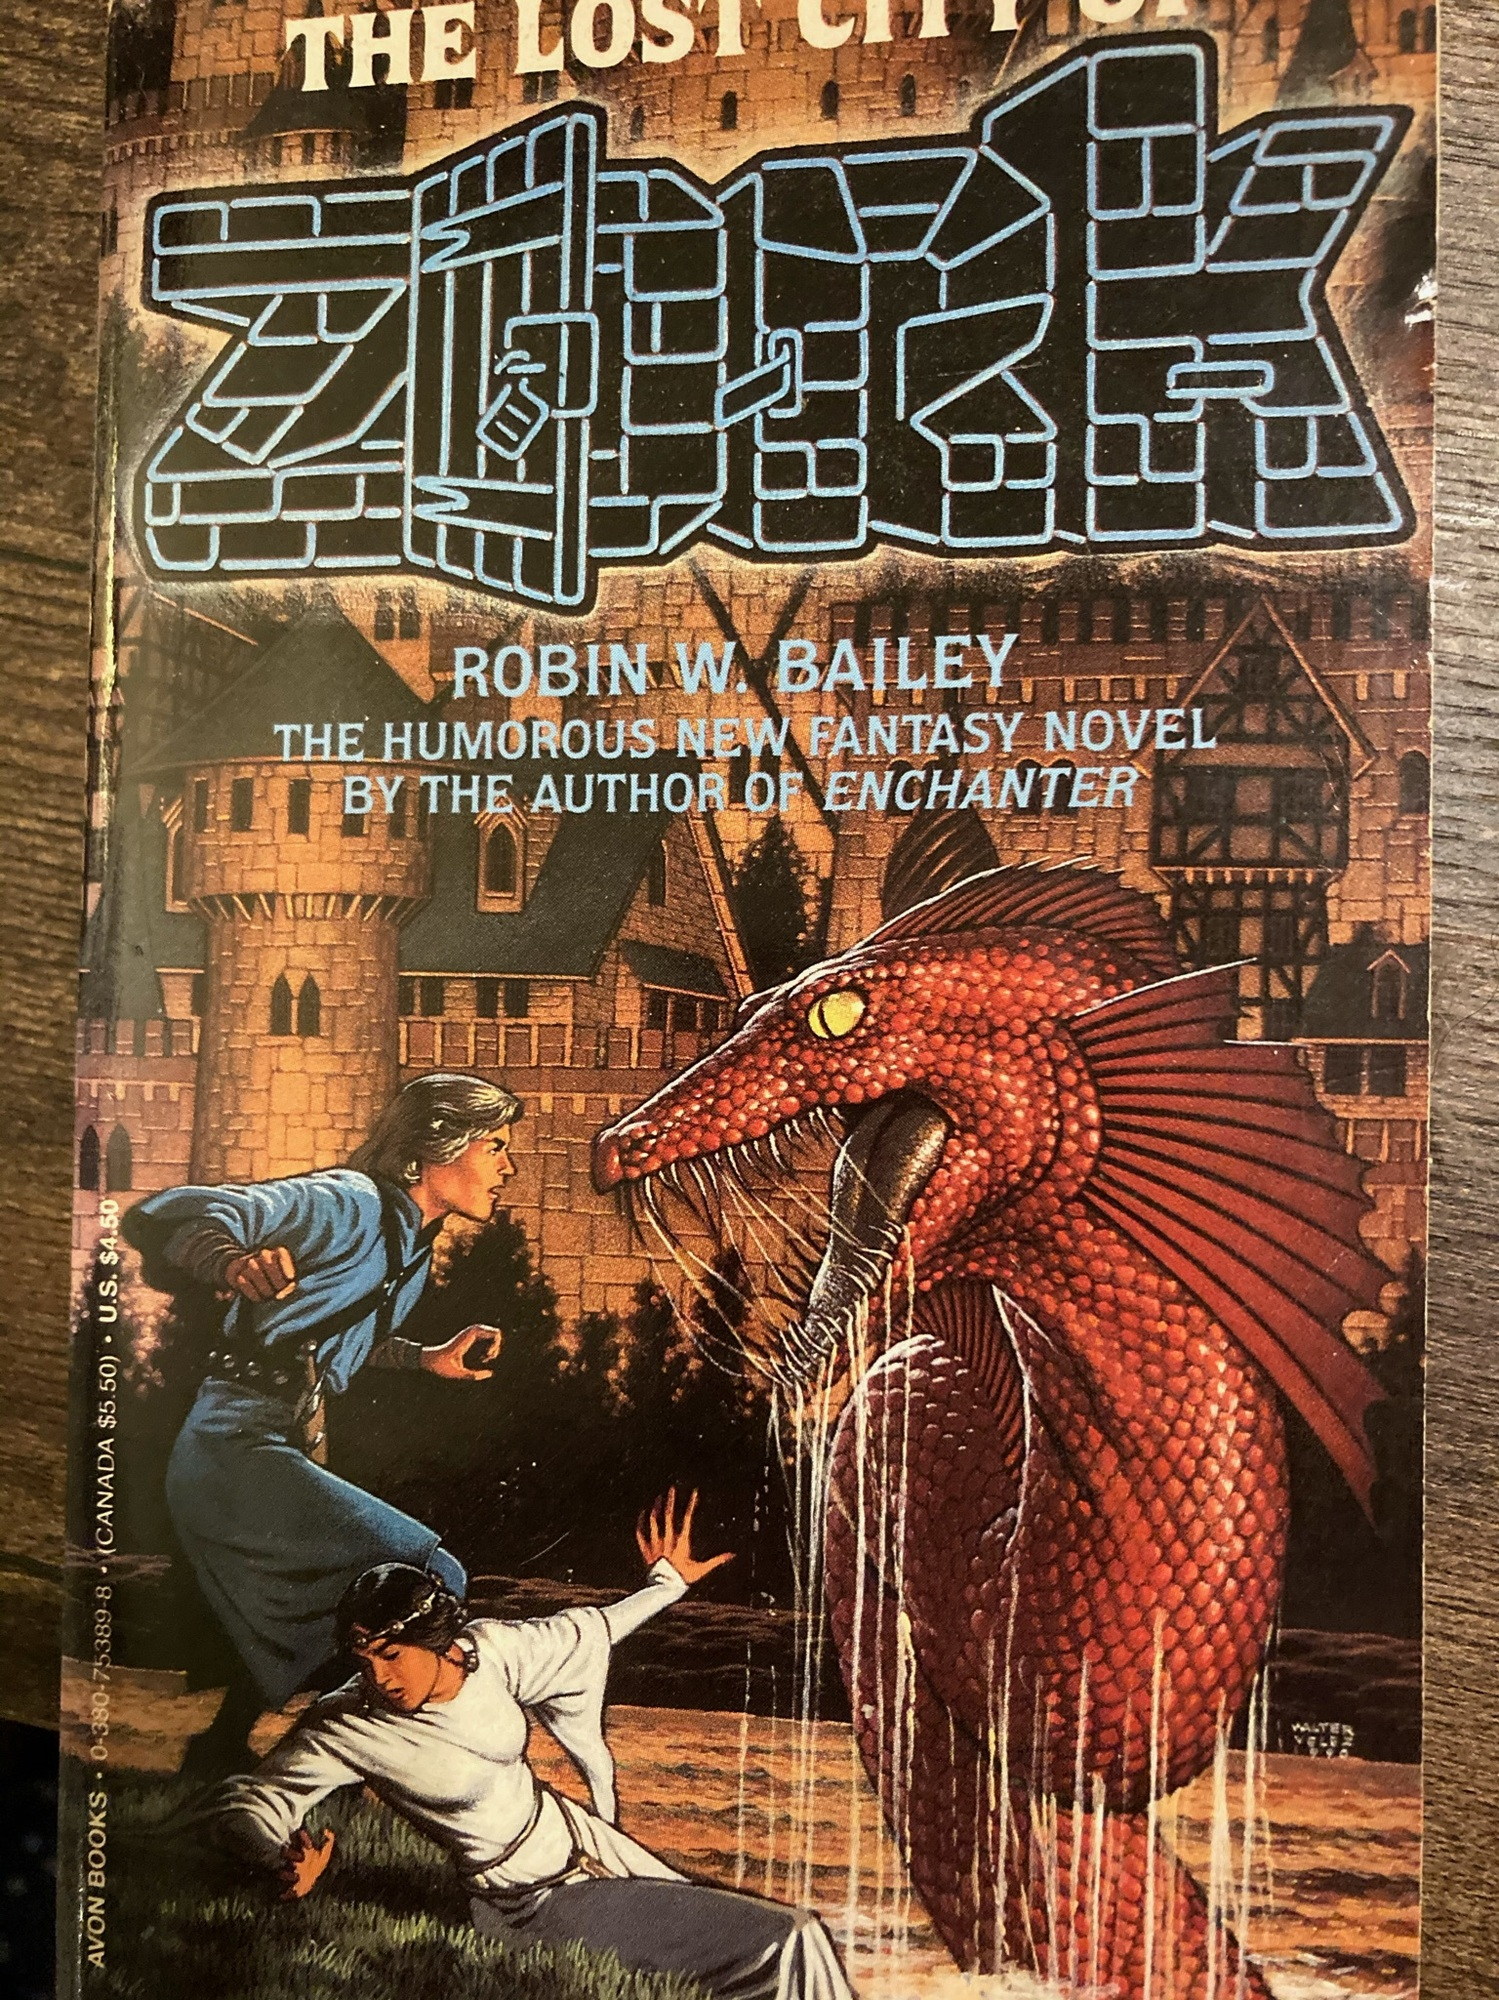 Lost City of Zork cover